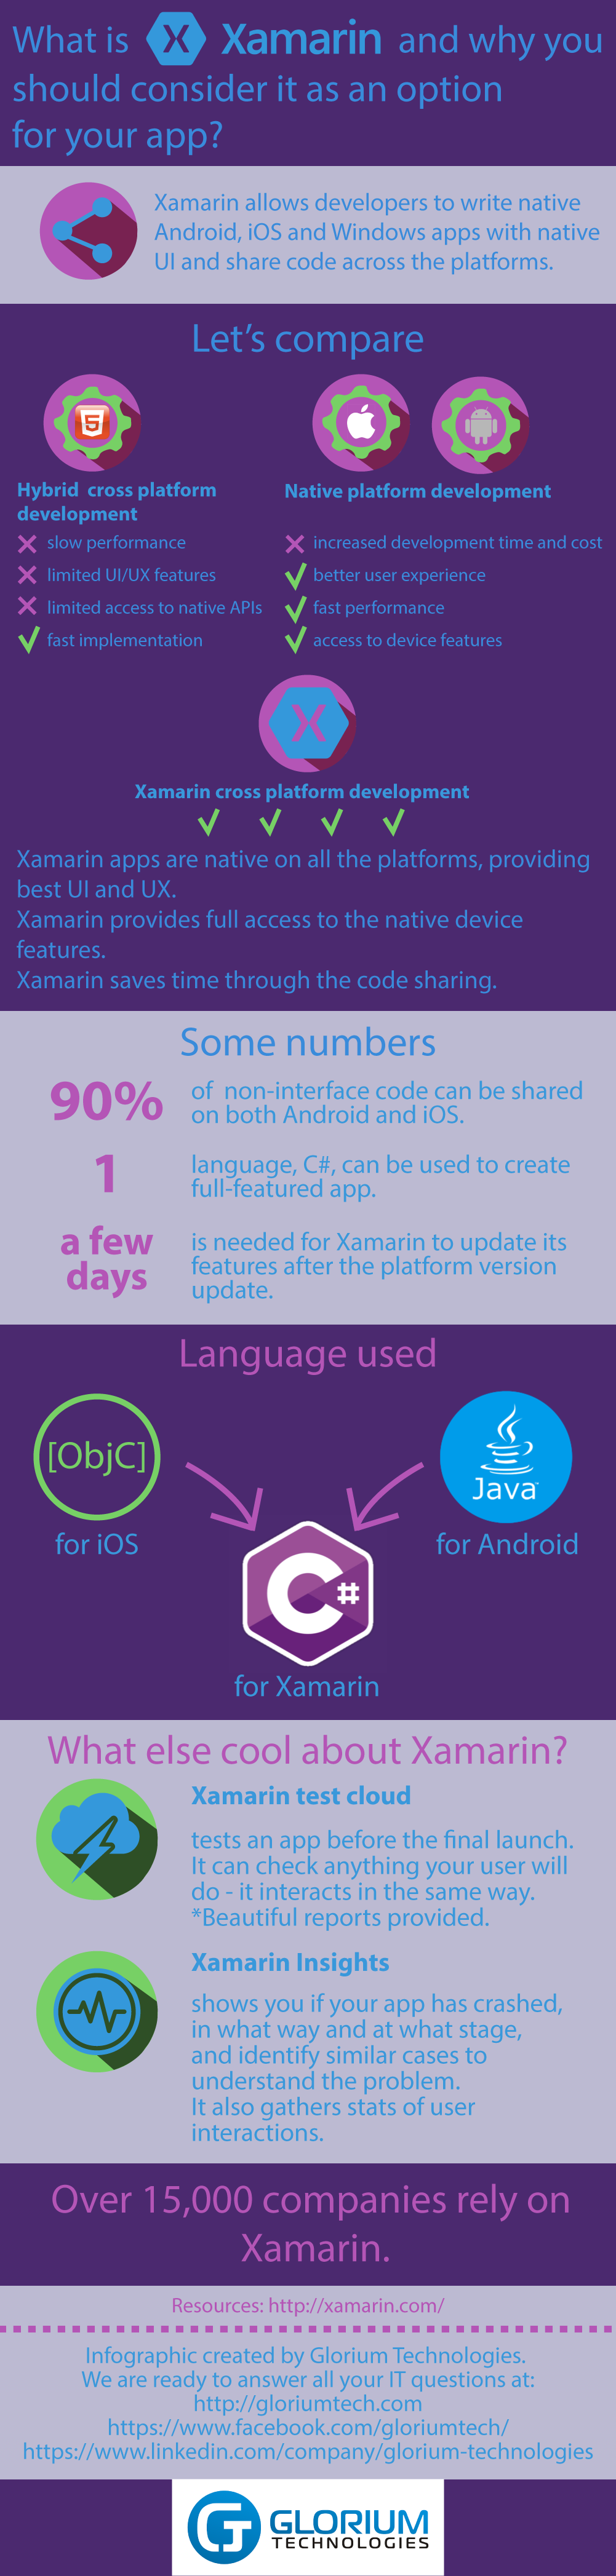 xamarin benefits for business infographic